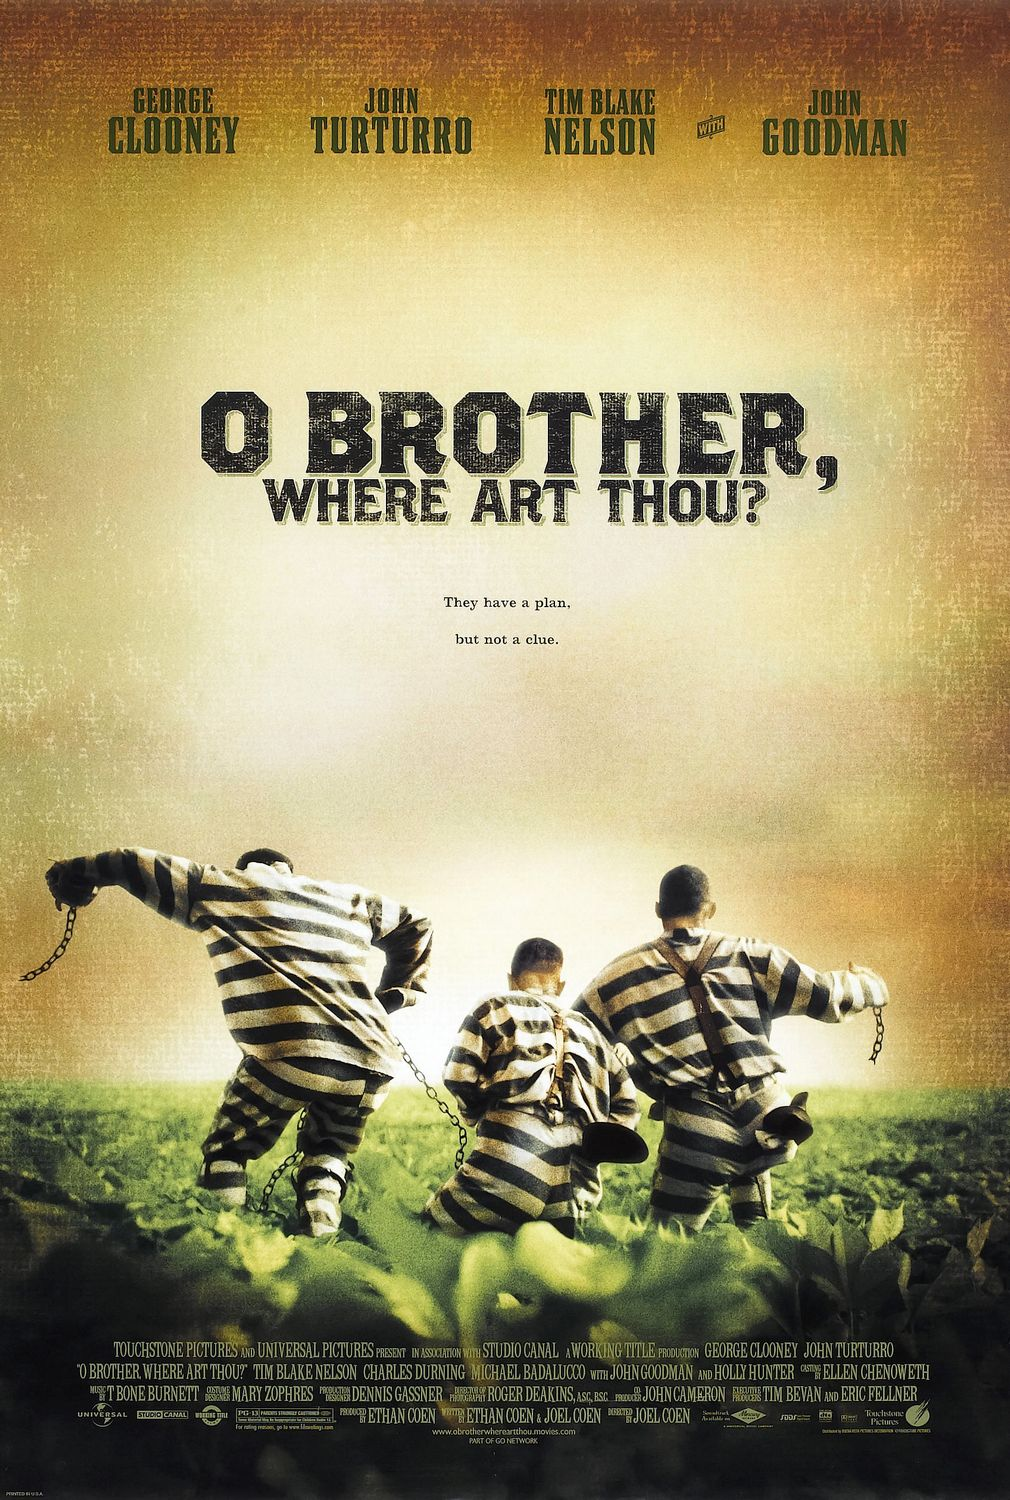 O Brother Where Art Thou Film Movie Poster